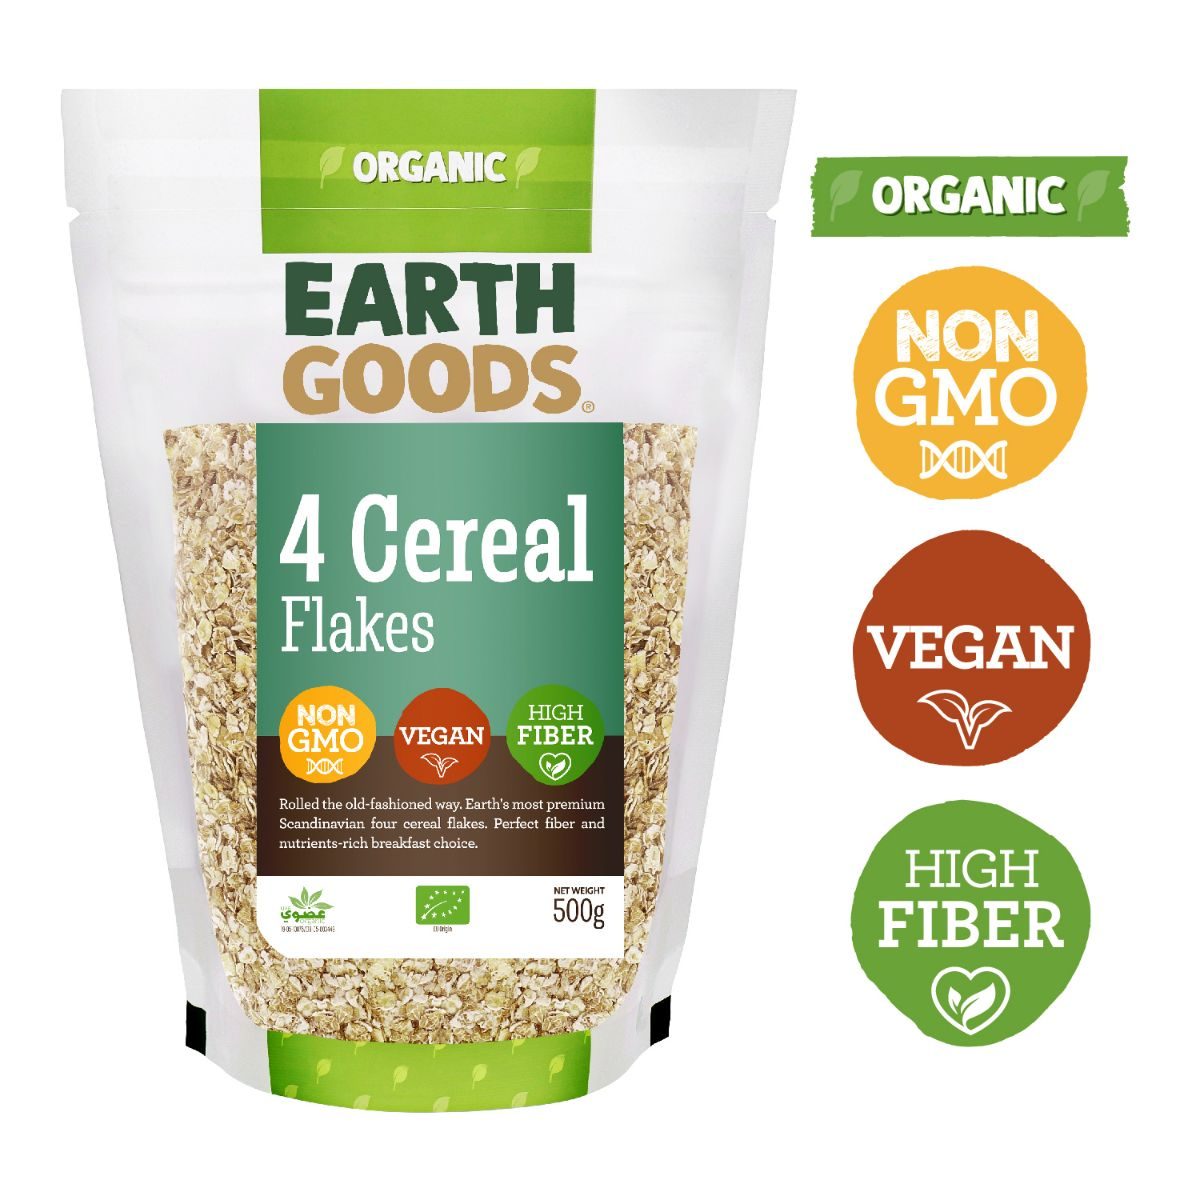 Earth Goods Organic 4 Cereal Flakes - 500g